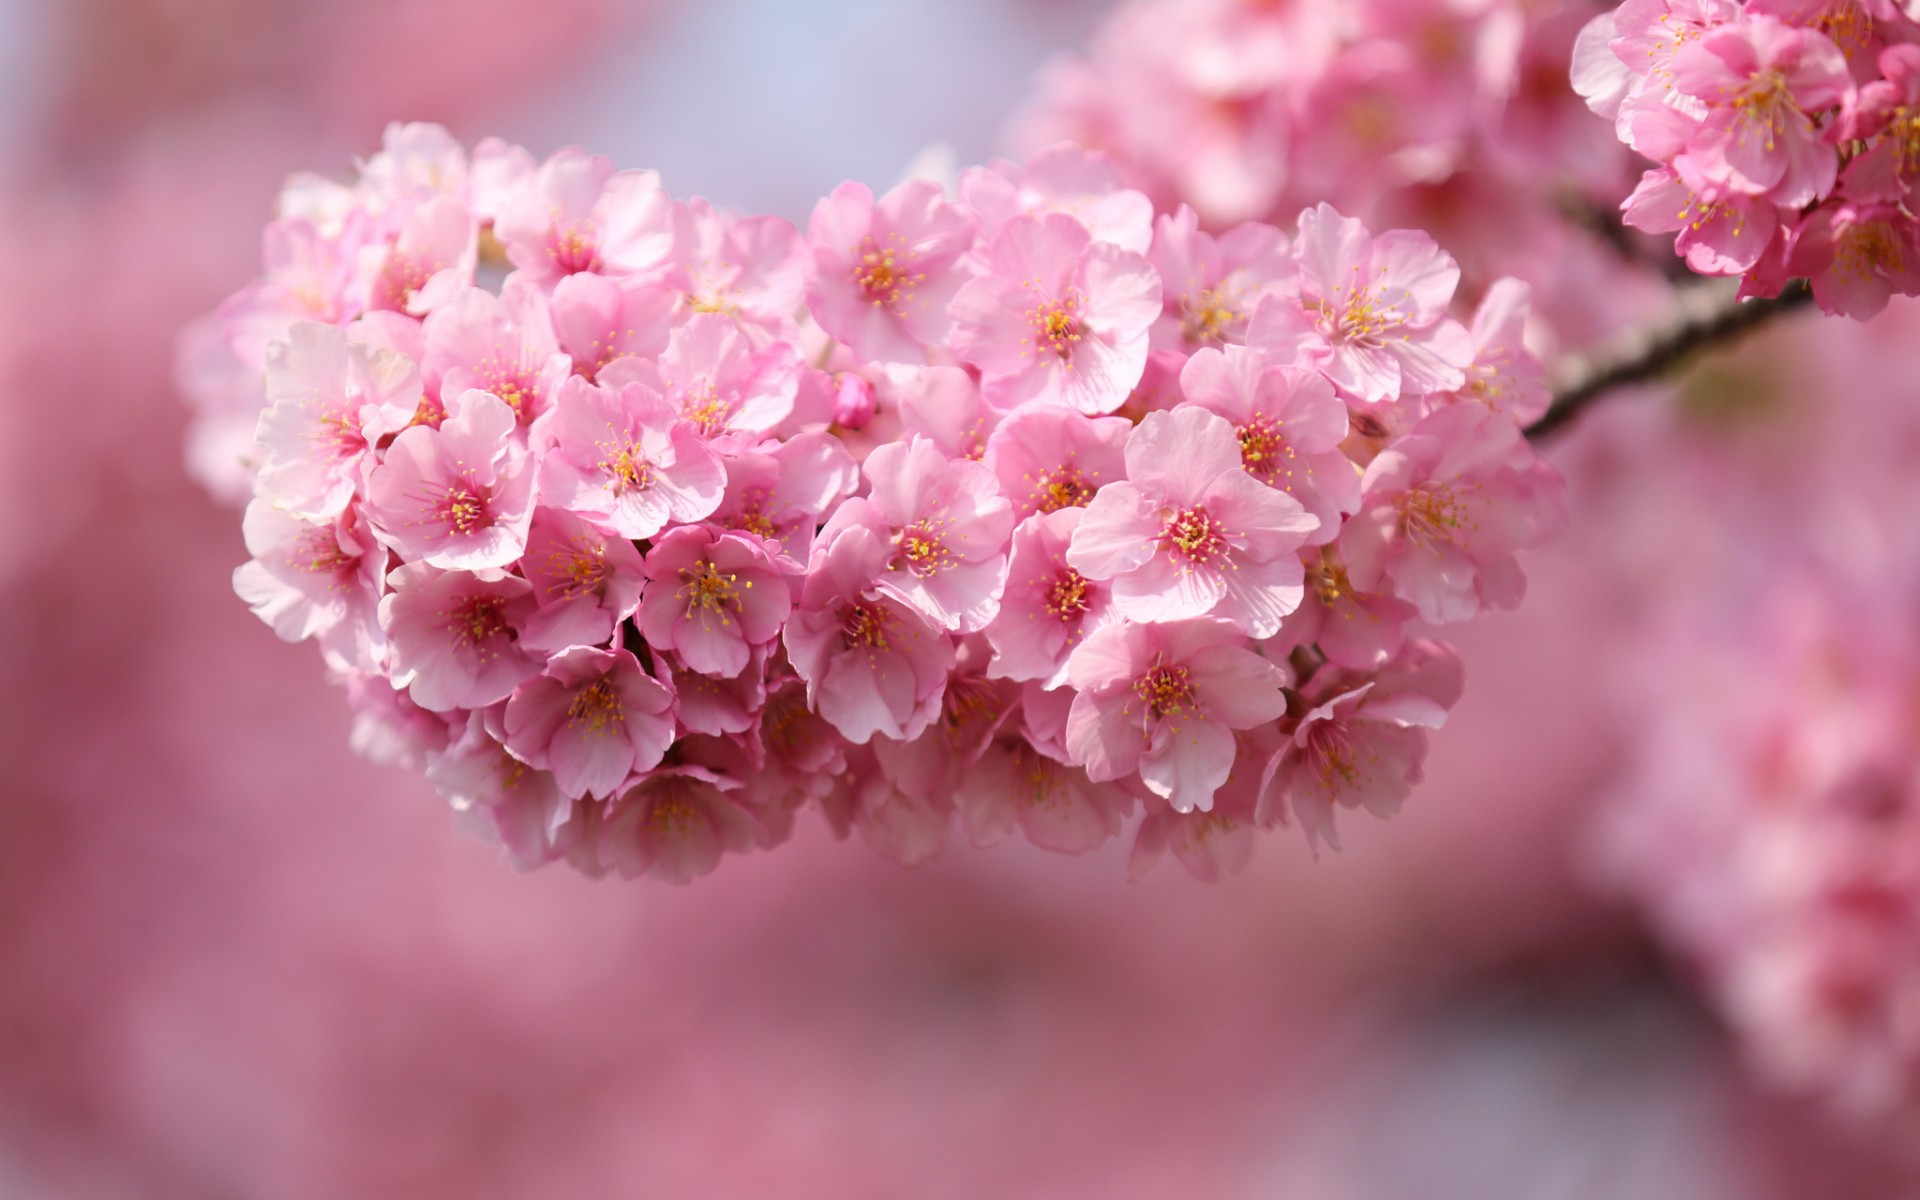 japan sakura cherry twigs wood flowers pink petals close-up blurred